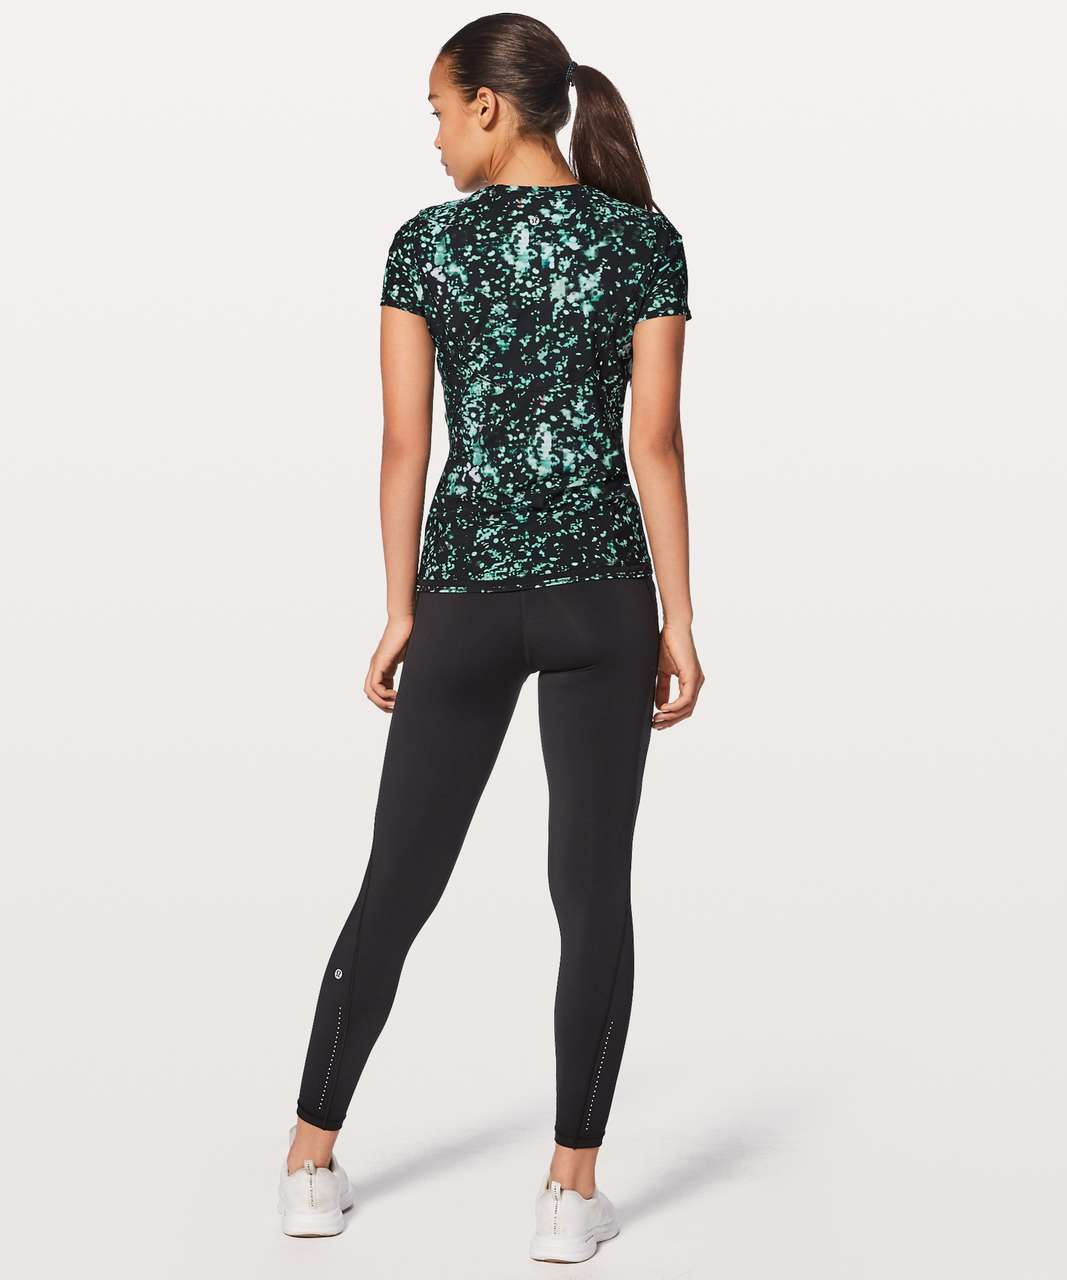 Lululemon Into the Sun Tee - Pixel Haze Multi Black / Black